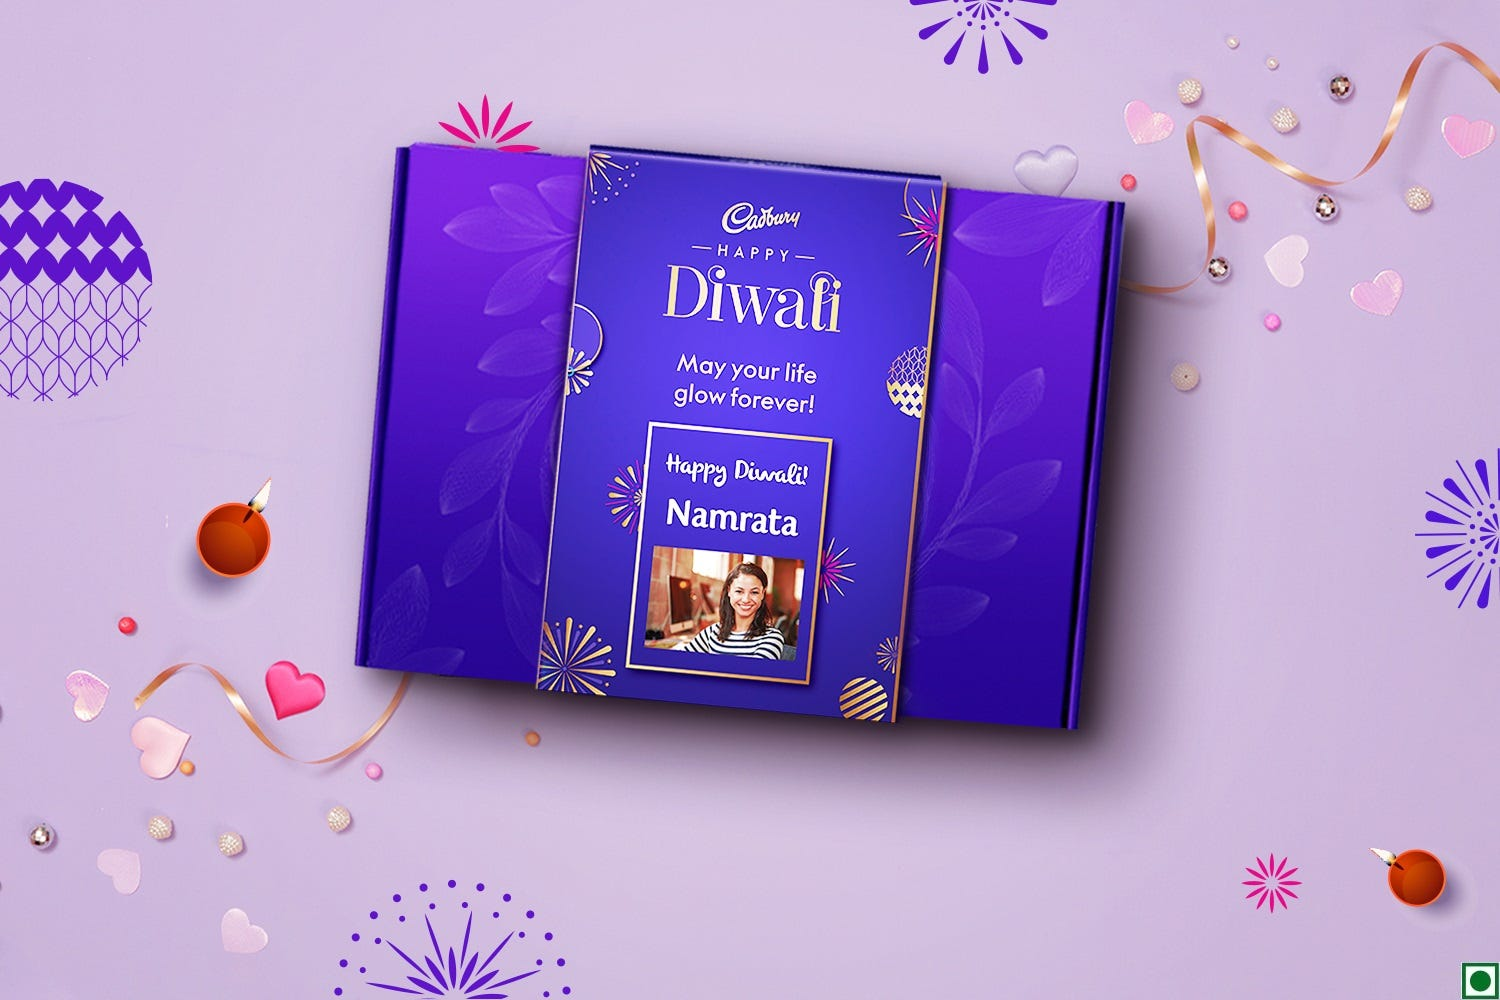 9 fabulous Diwali gifts for friends